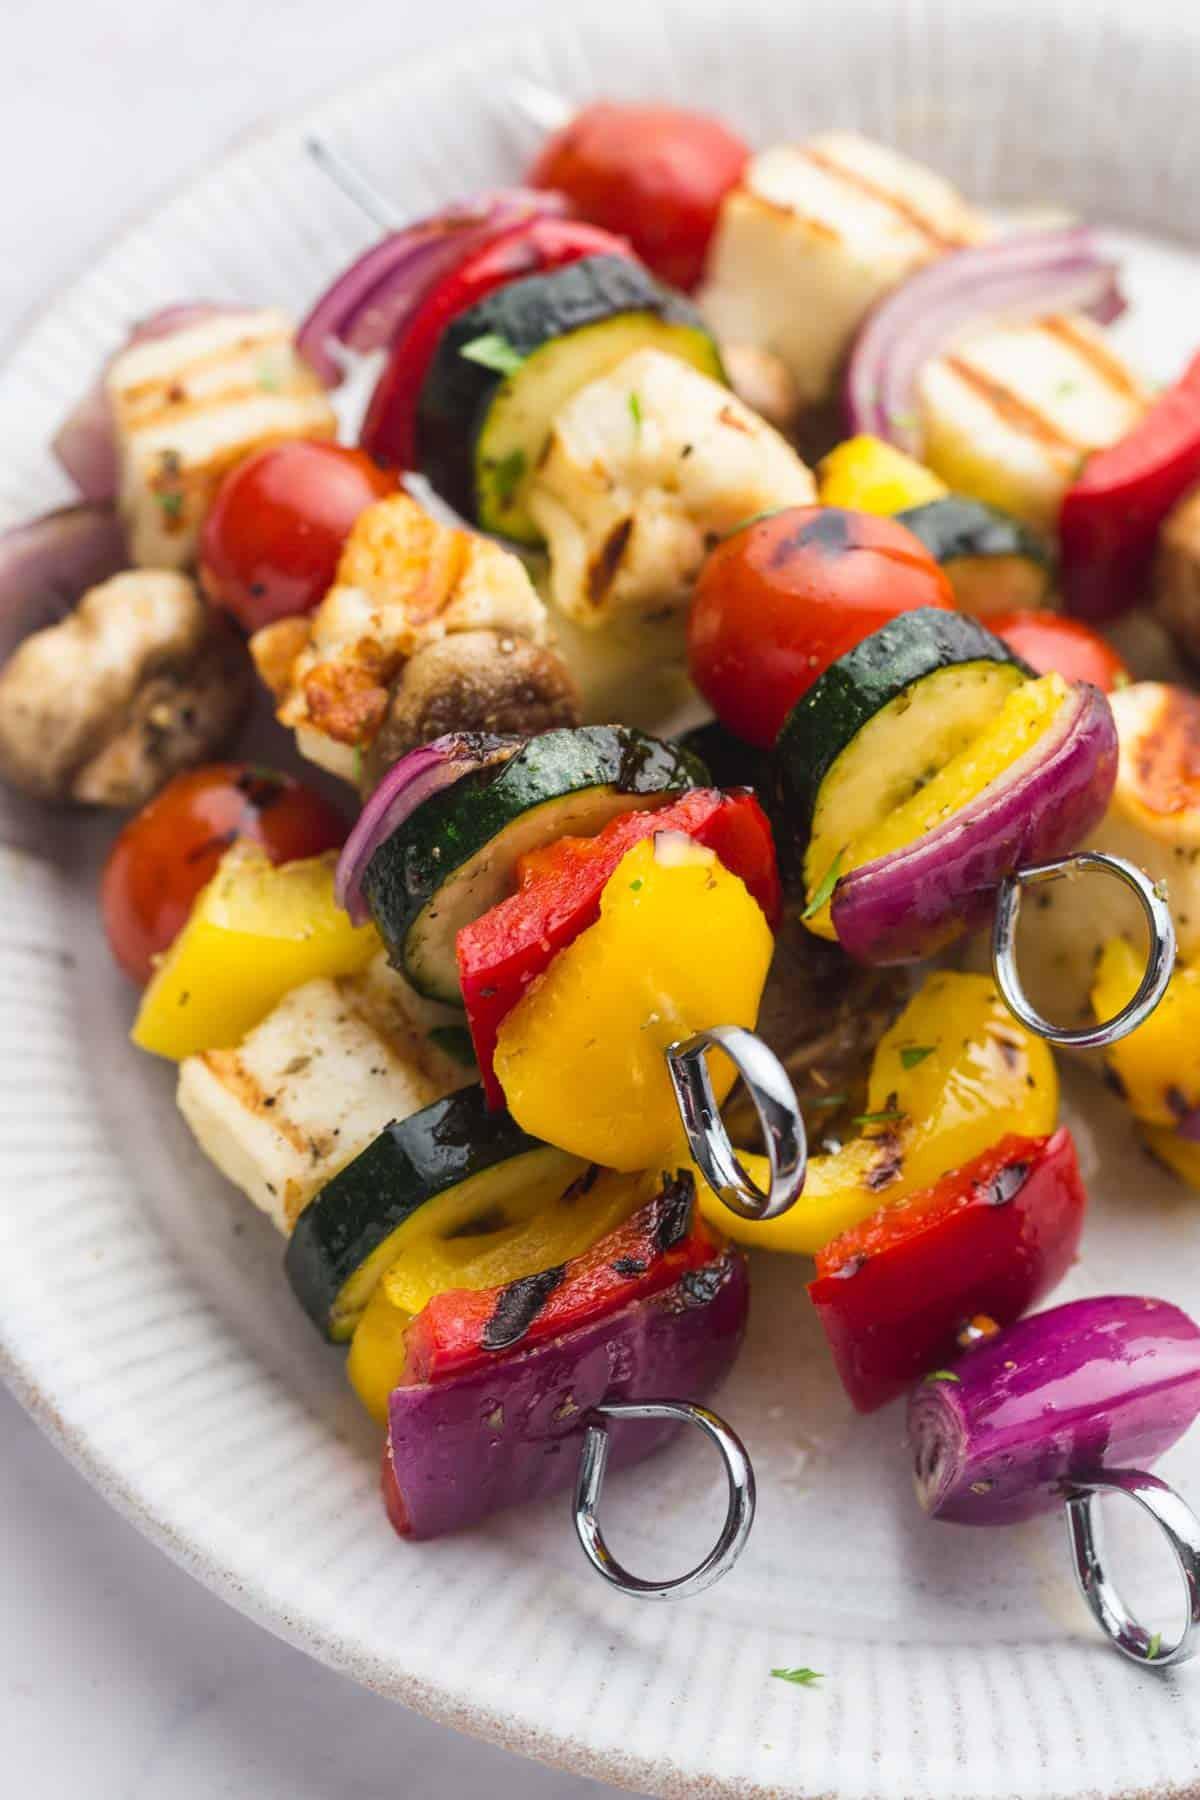 Veggie Kabobs with Halloumi on metal skewers on a white plate